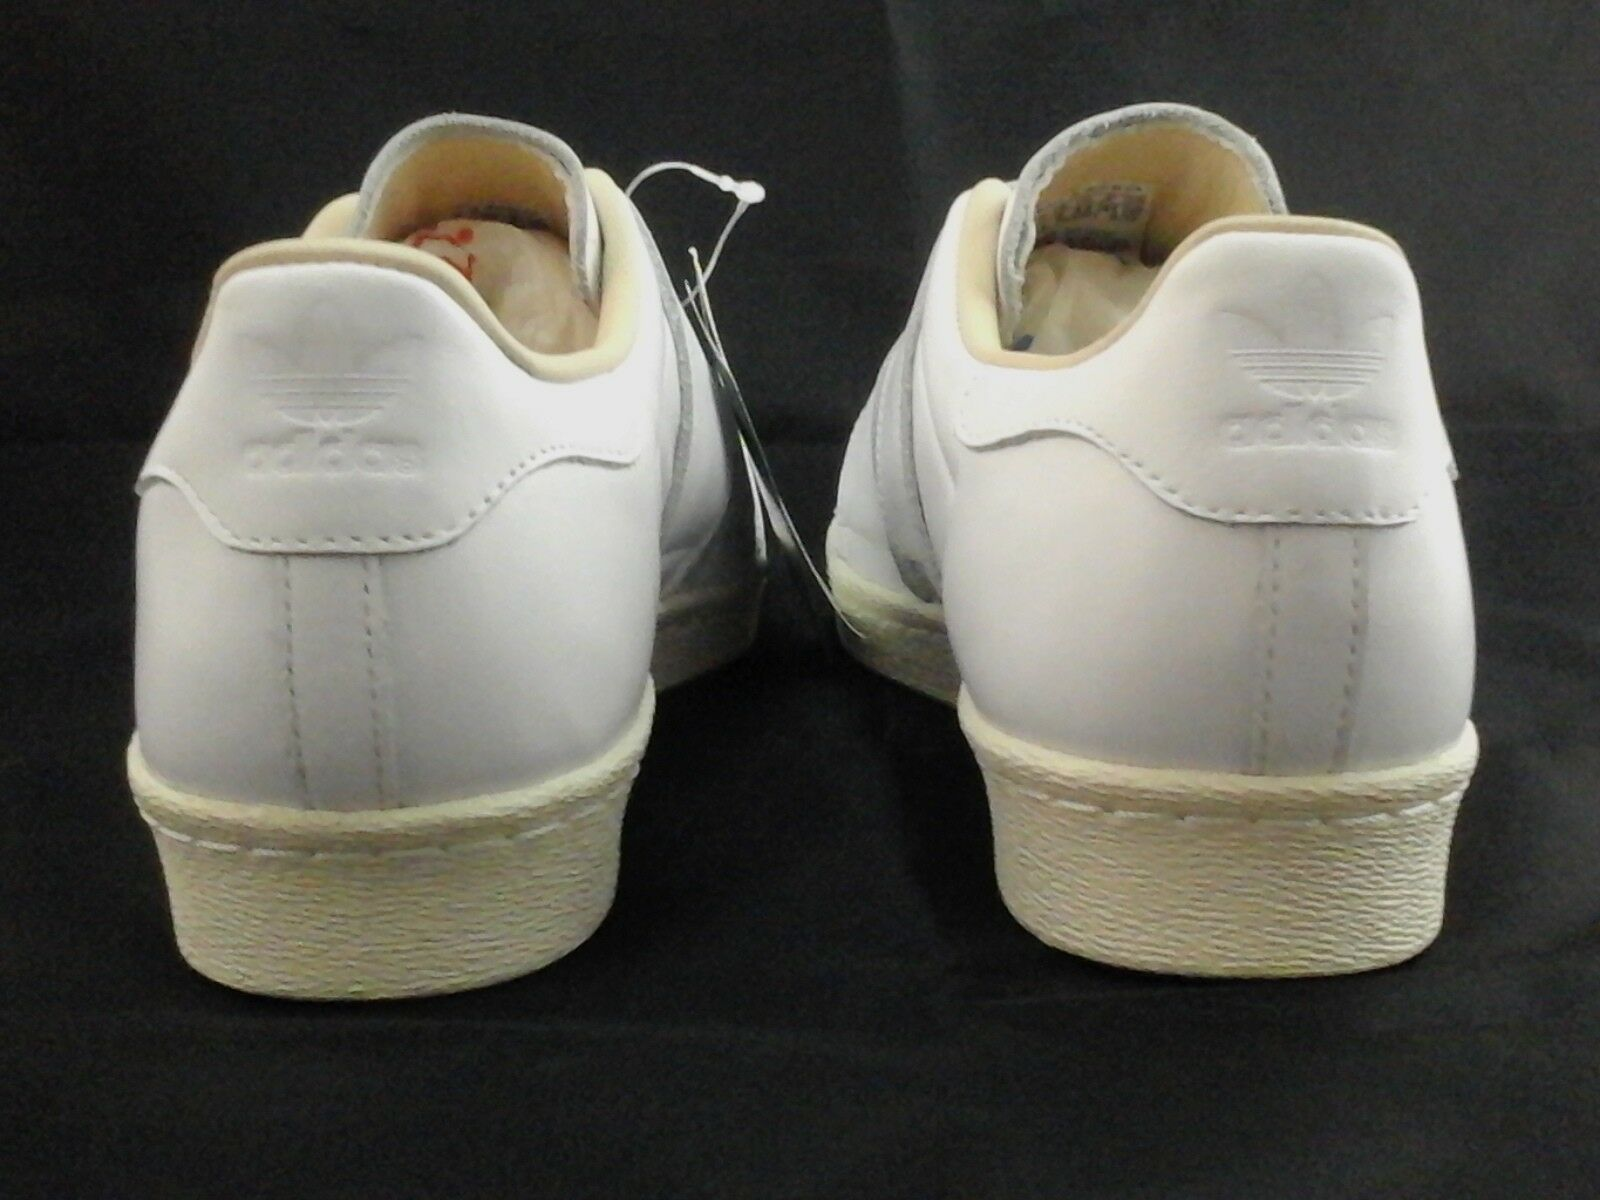 ADIDAS Superstar White Leather Sneakers 80s 80s 80s w Straps CQ2447 Womens US 9.5 42 New cf764c